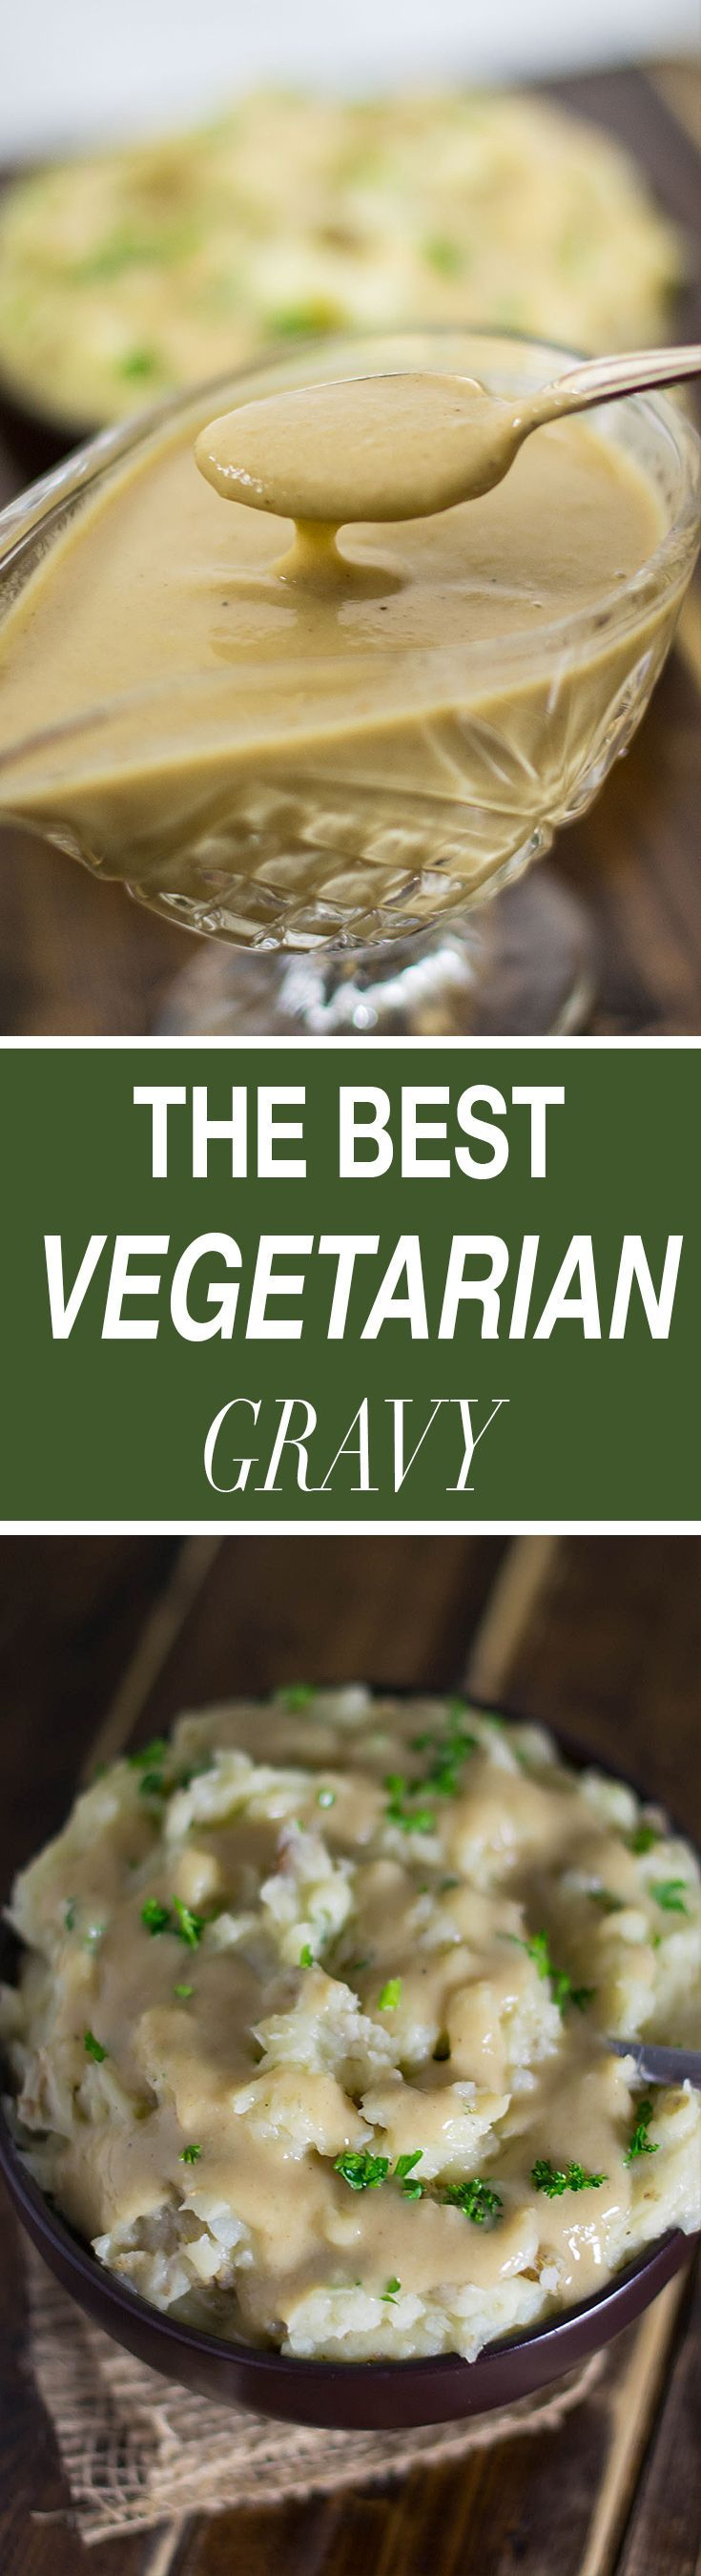 The best vegetarian gravy recipe made with mushrooms, garlic and onion. Full of rich creamy flavor, this is sure to be a hit at your Thanksgiving table!